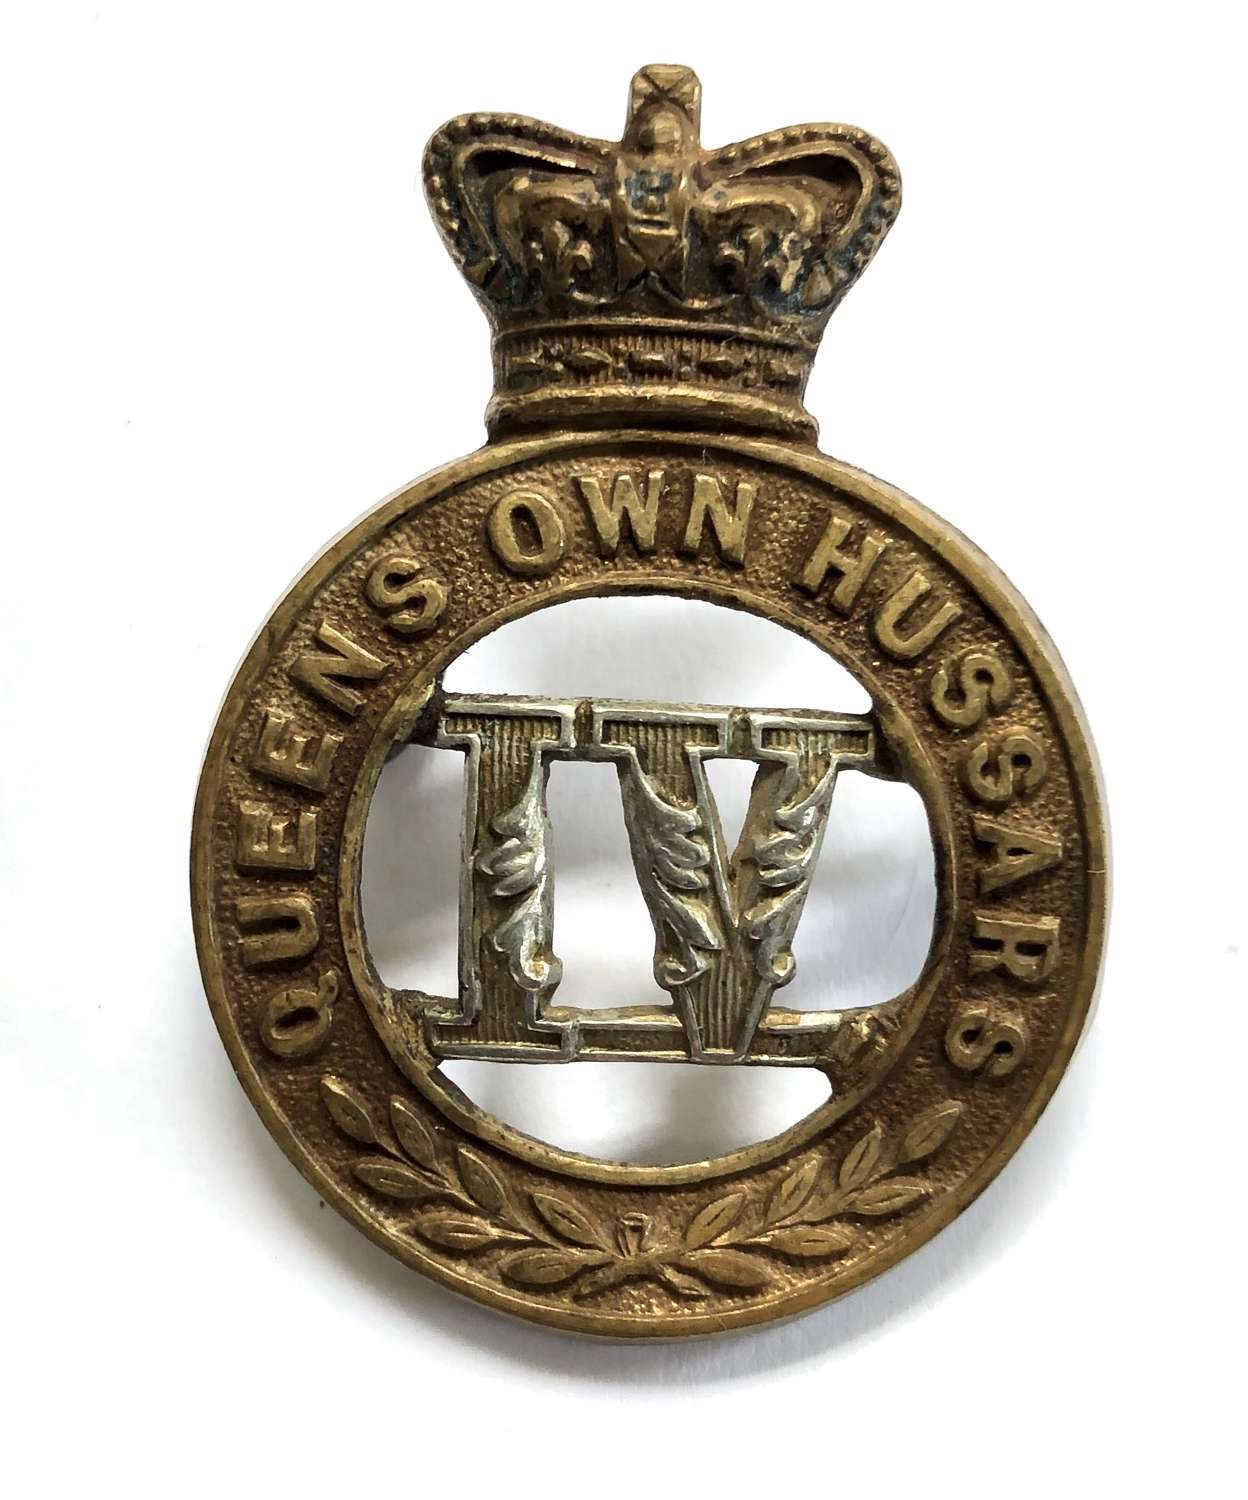 4th Queen's Own Hussars Victorian OR's cap badge circa 1896-1901